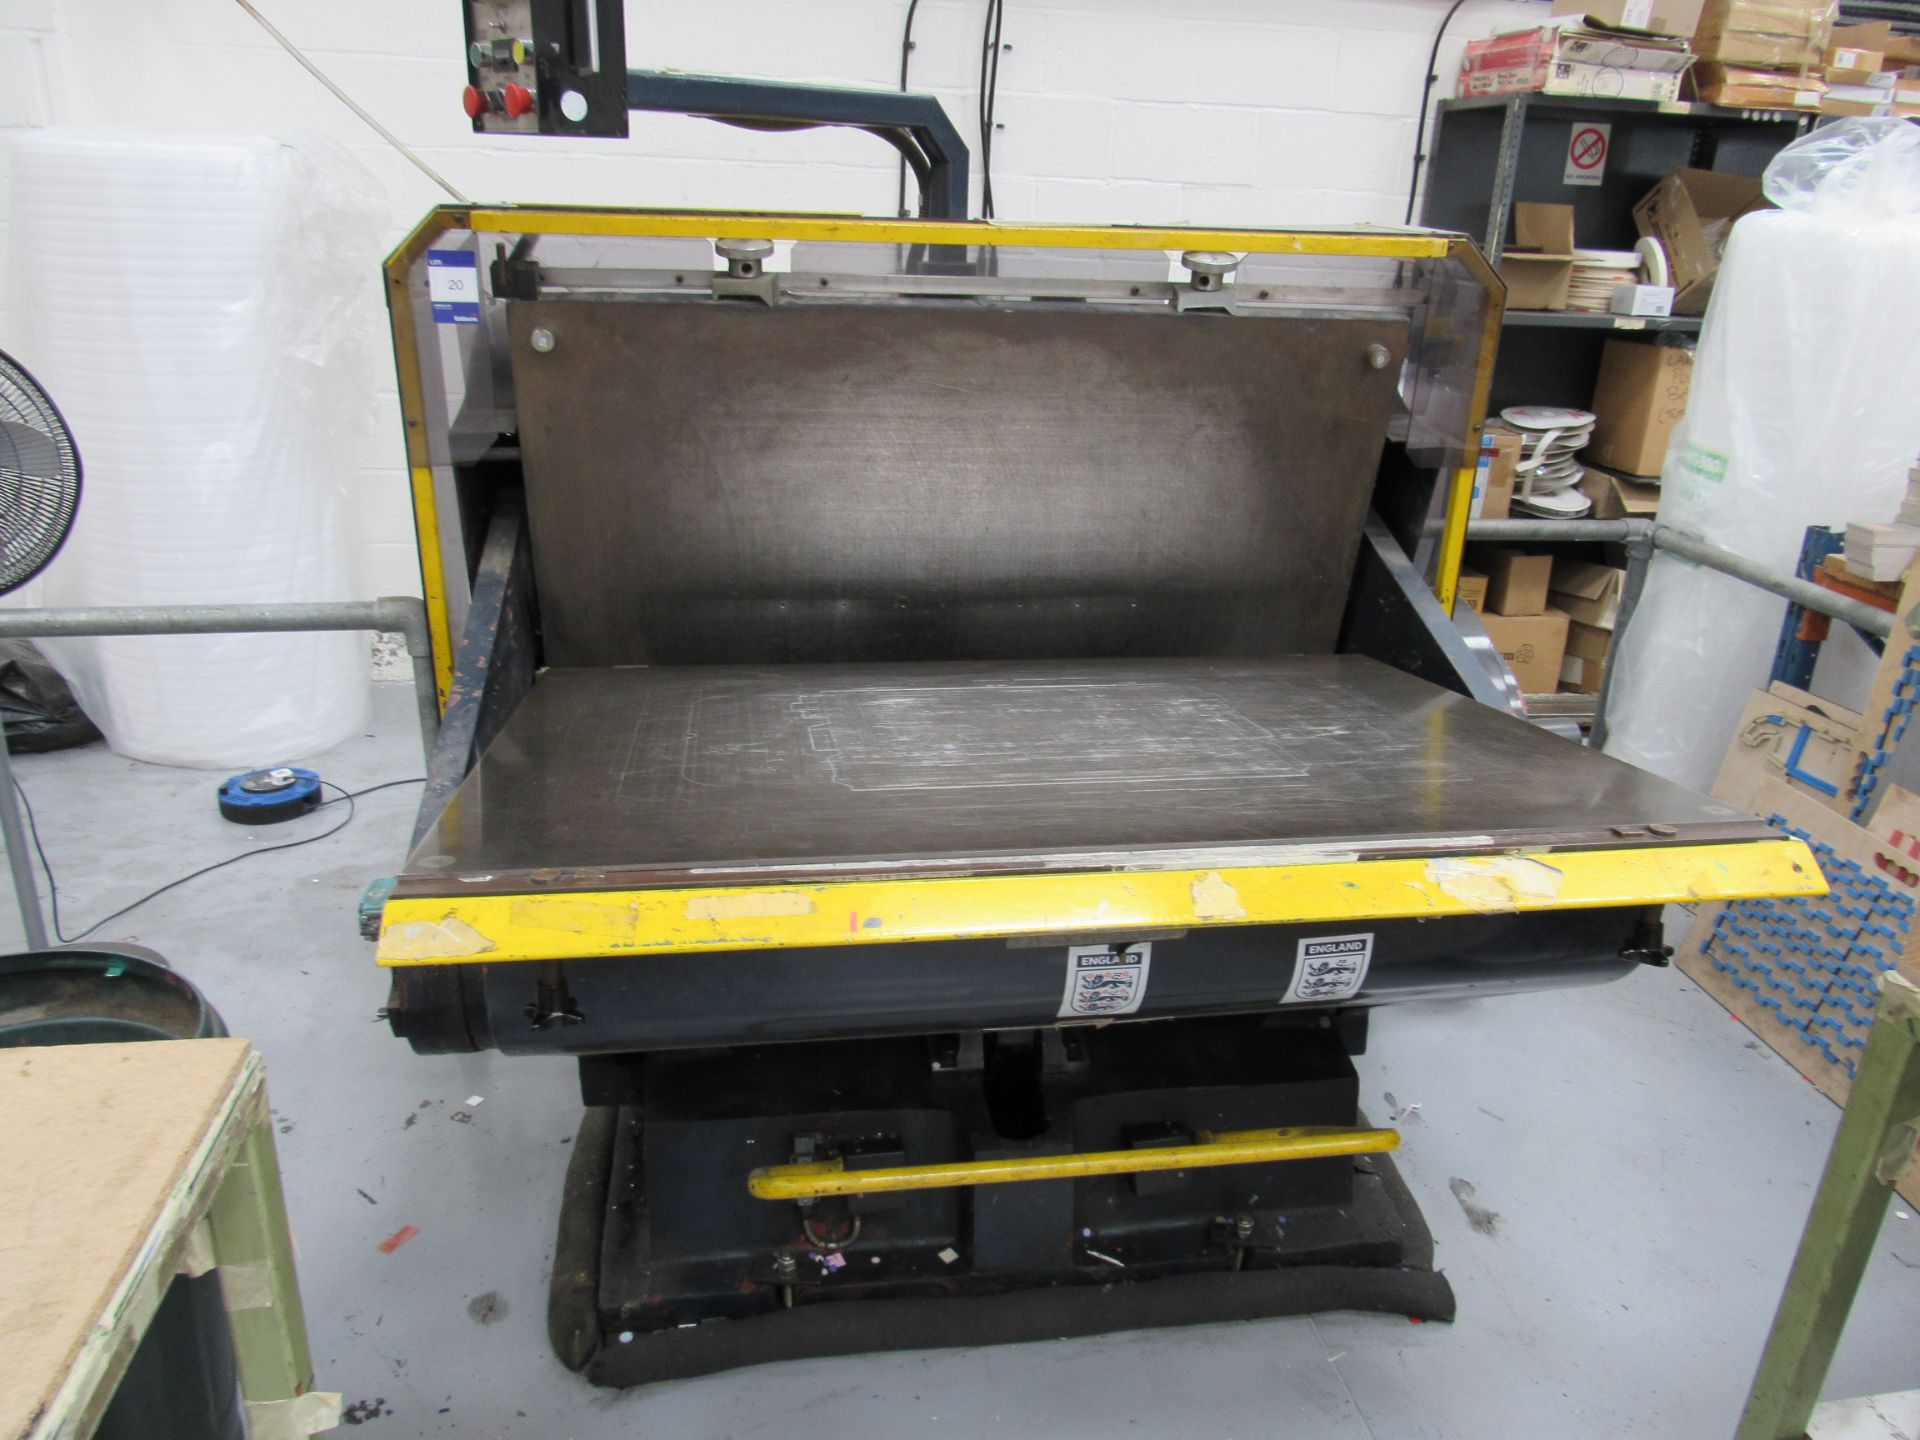 Viking Press VK1330 Cut and Crease Platen 1330 x 960mm Serial Number 97172